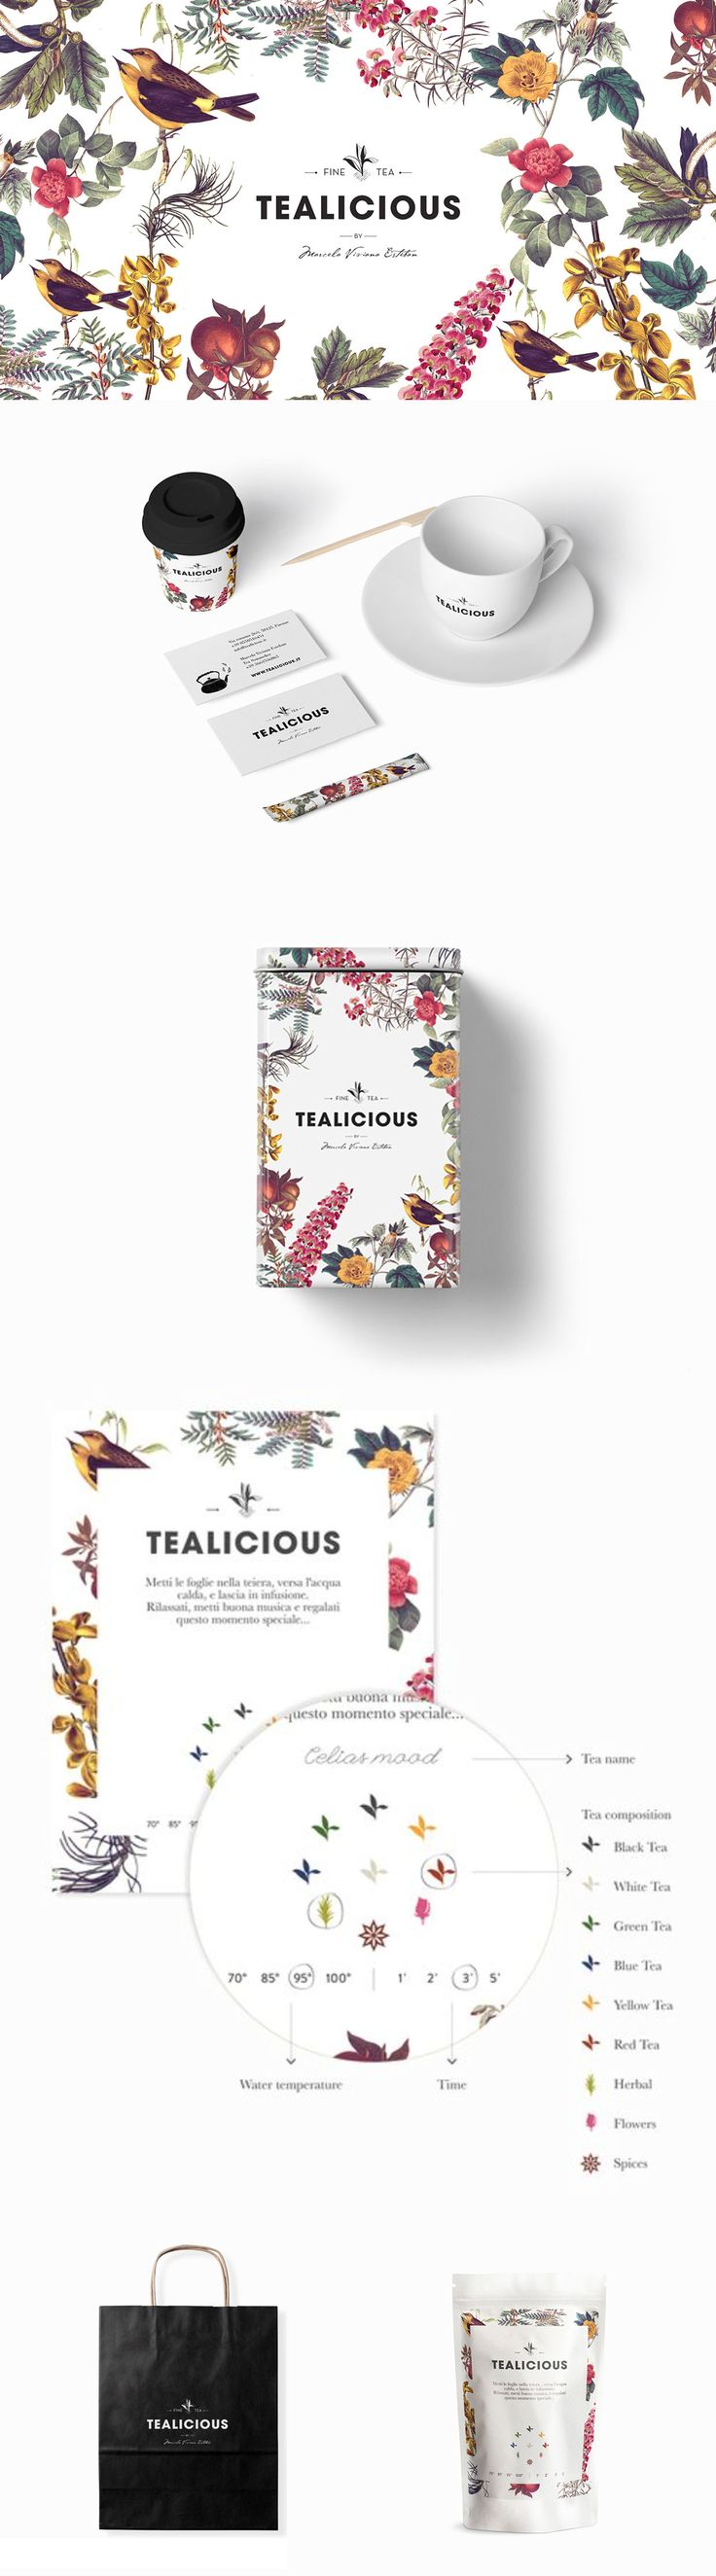 Tealicious merchandise and take-out supplies are framed around a luscious…